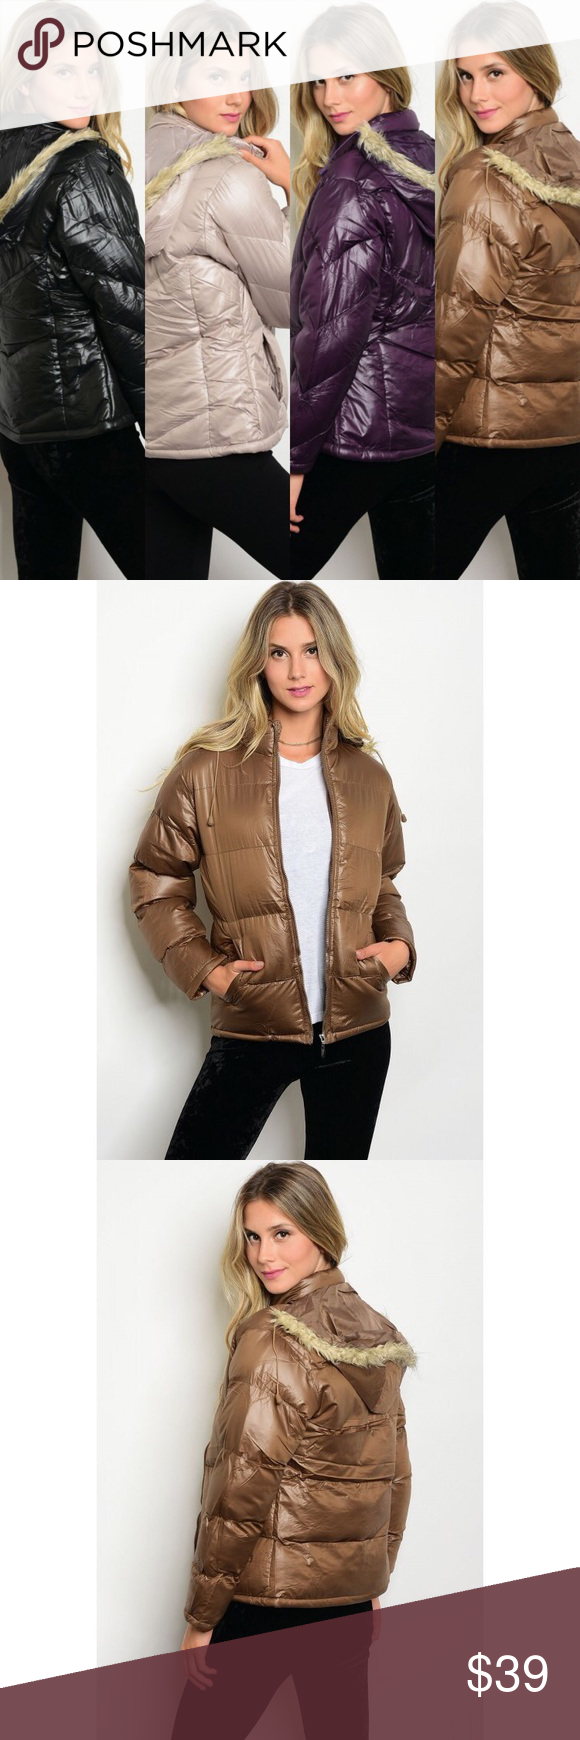 New Mocha Puffer Jacket New Long Sleeve Mocha Colored Puffer Jacket With Faux Fur Detachable Trimmed Hood Also Avail Clothes Design Fashion Fashion Design [ 1740 x 580 Pixel ]